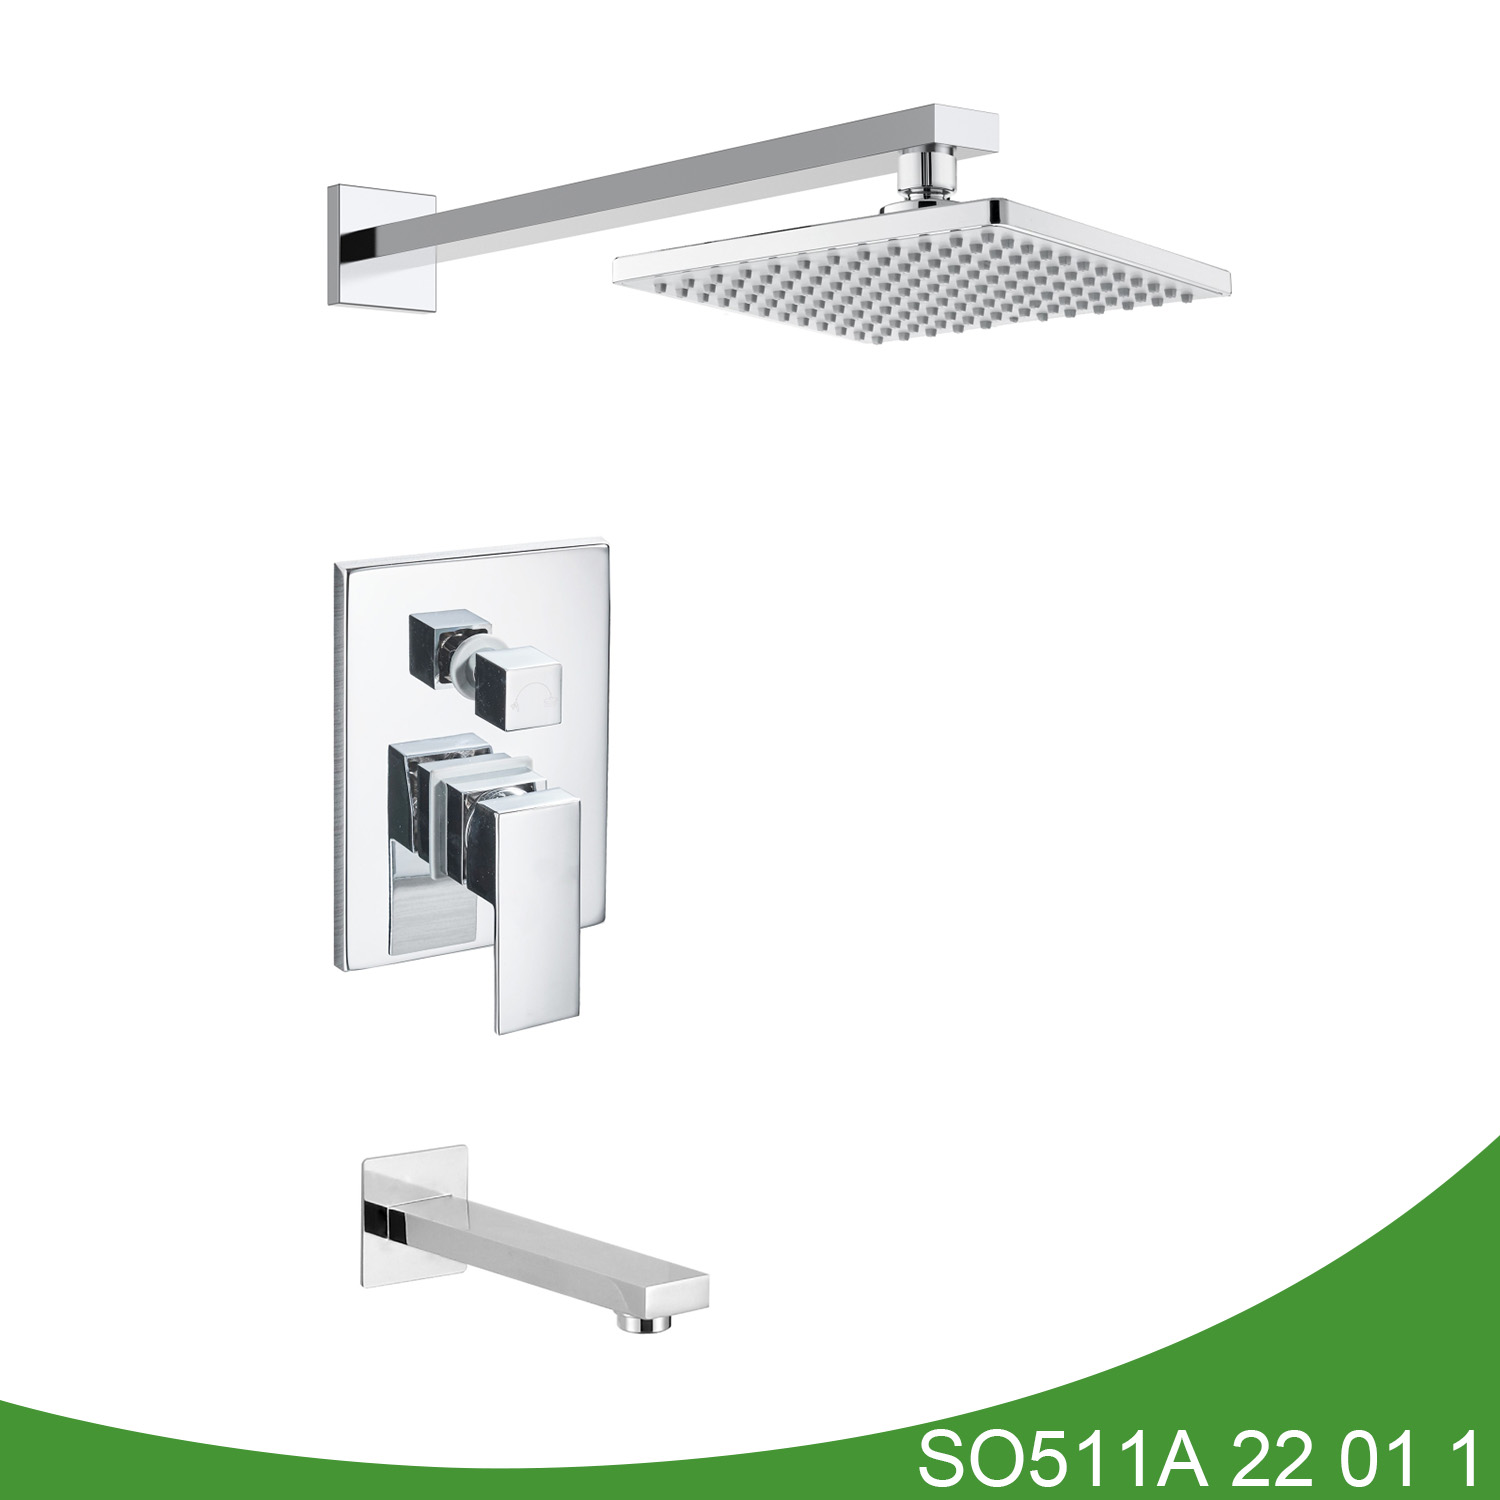 Hot and cold shower set SO511A 22 01 1